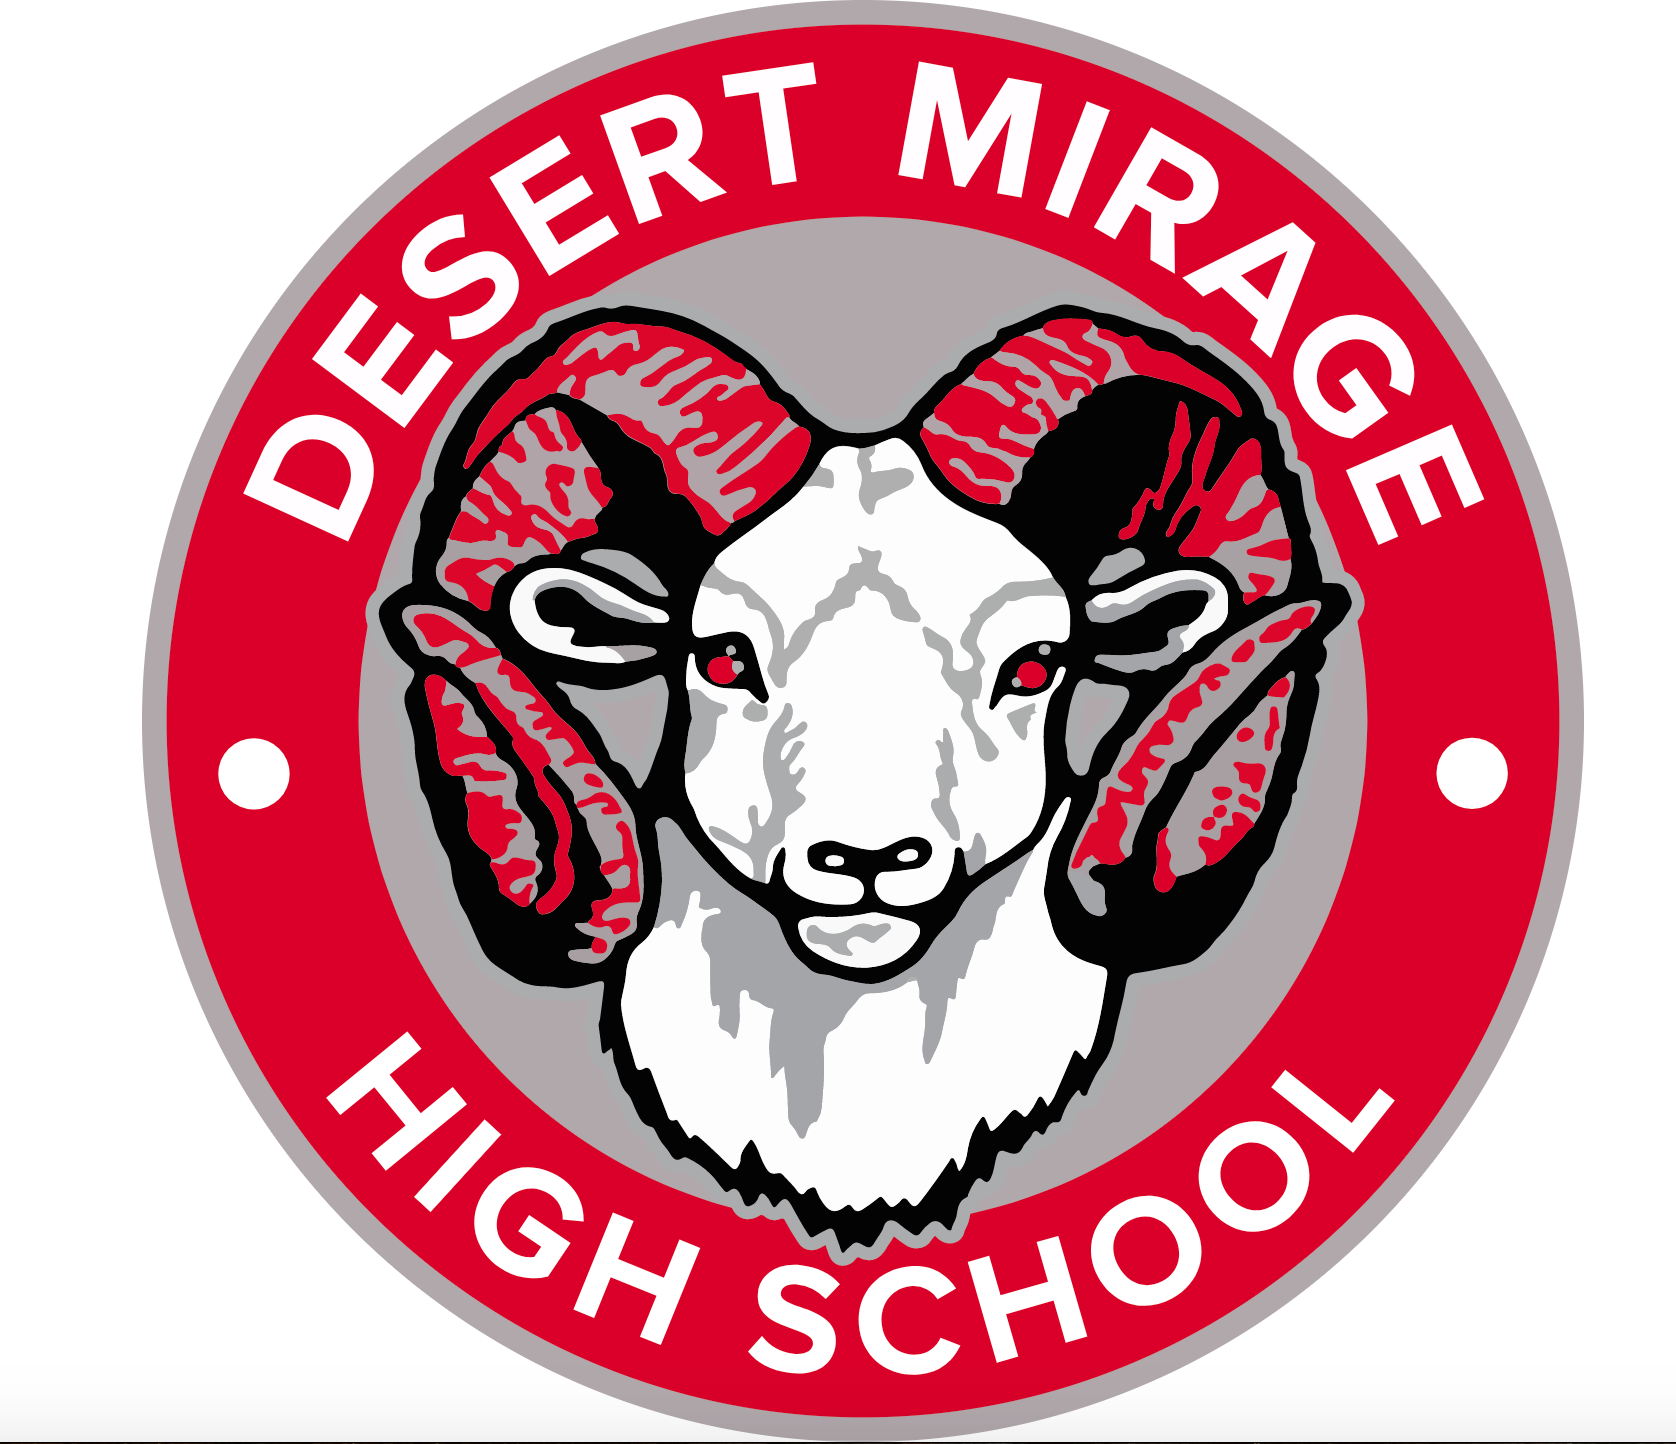 Desert Mirage High School